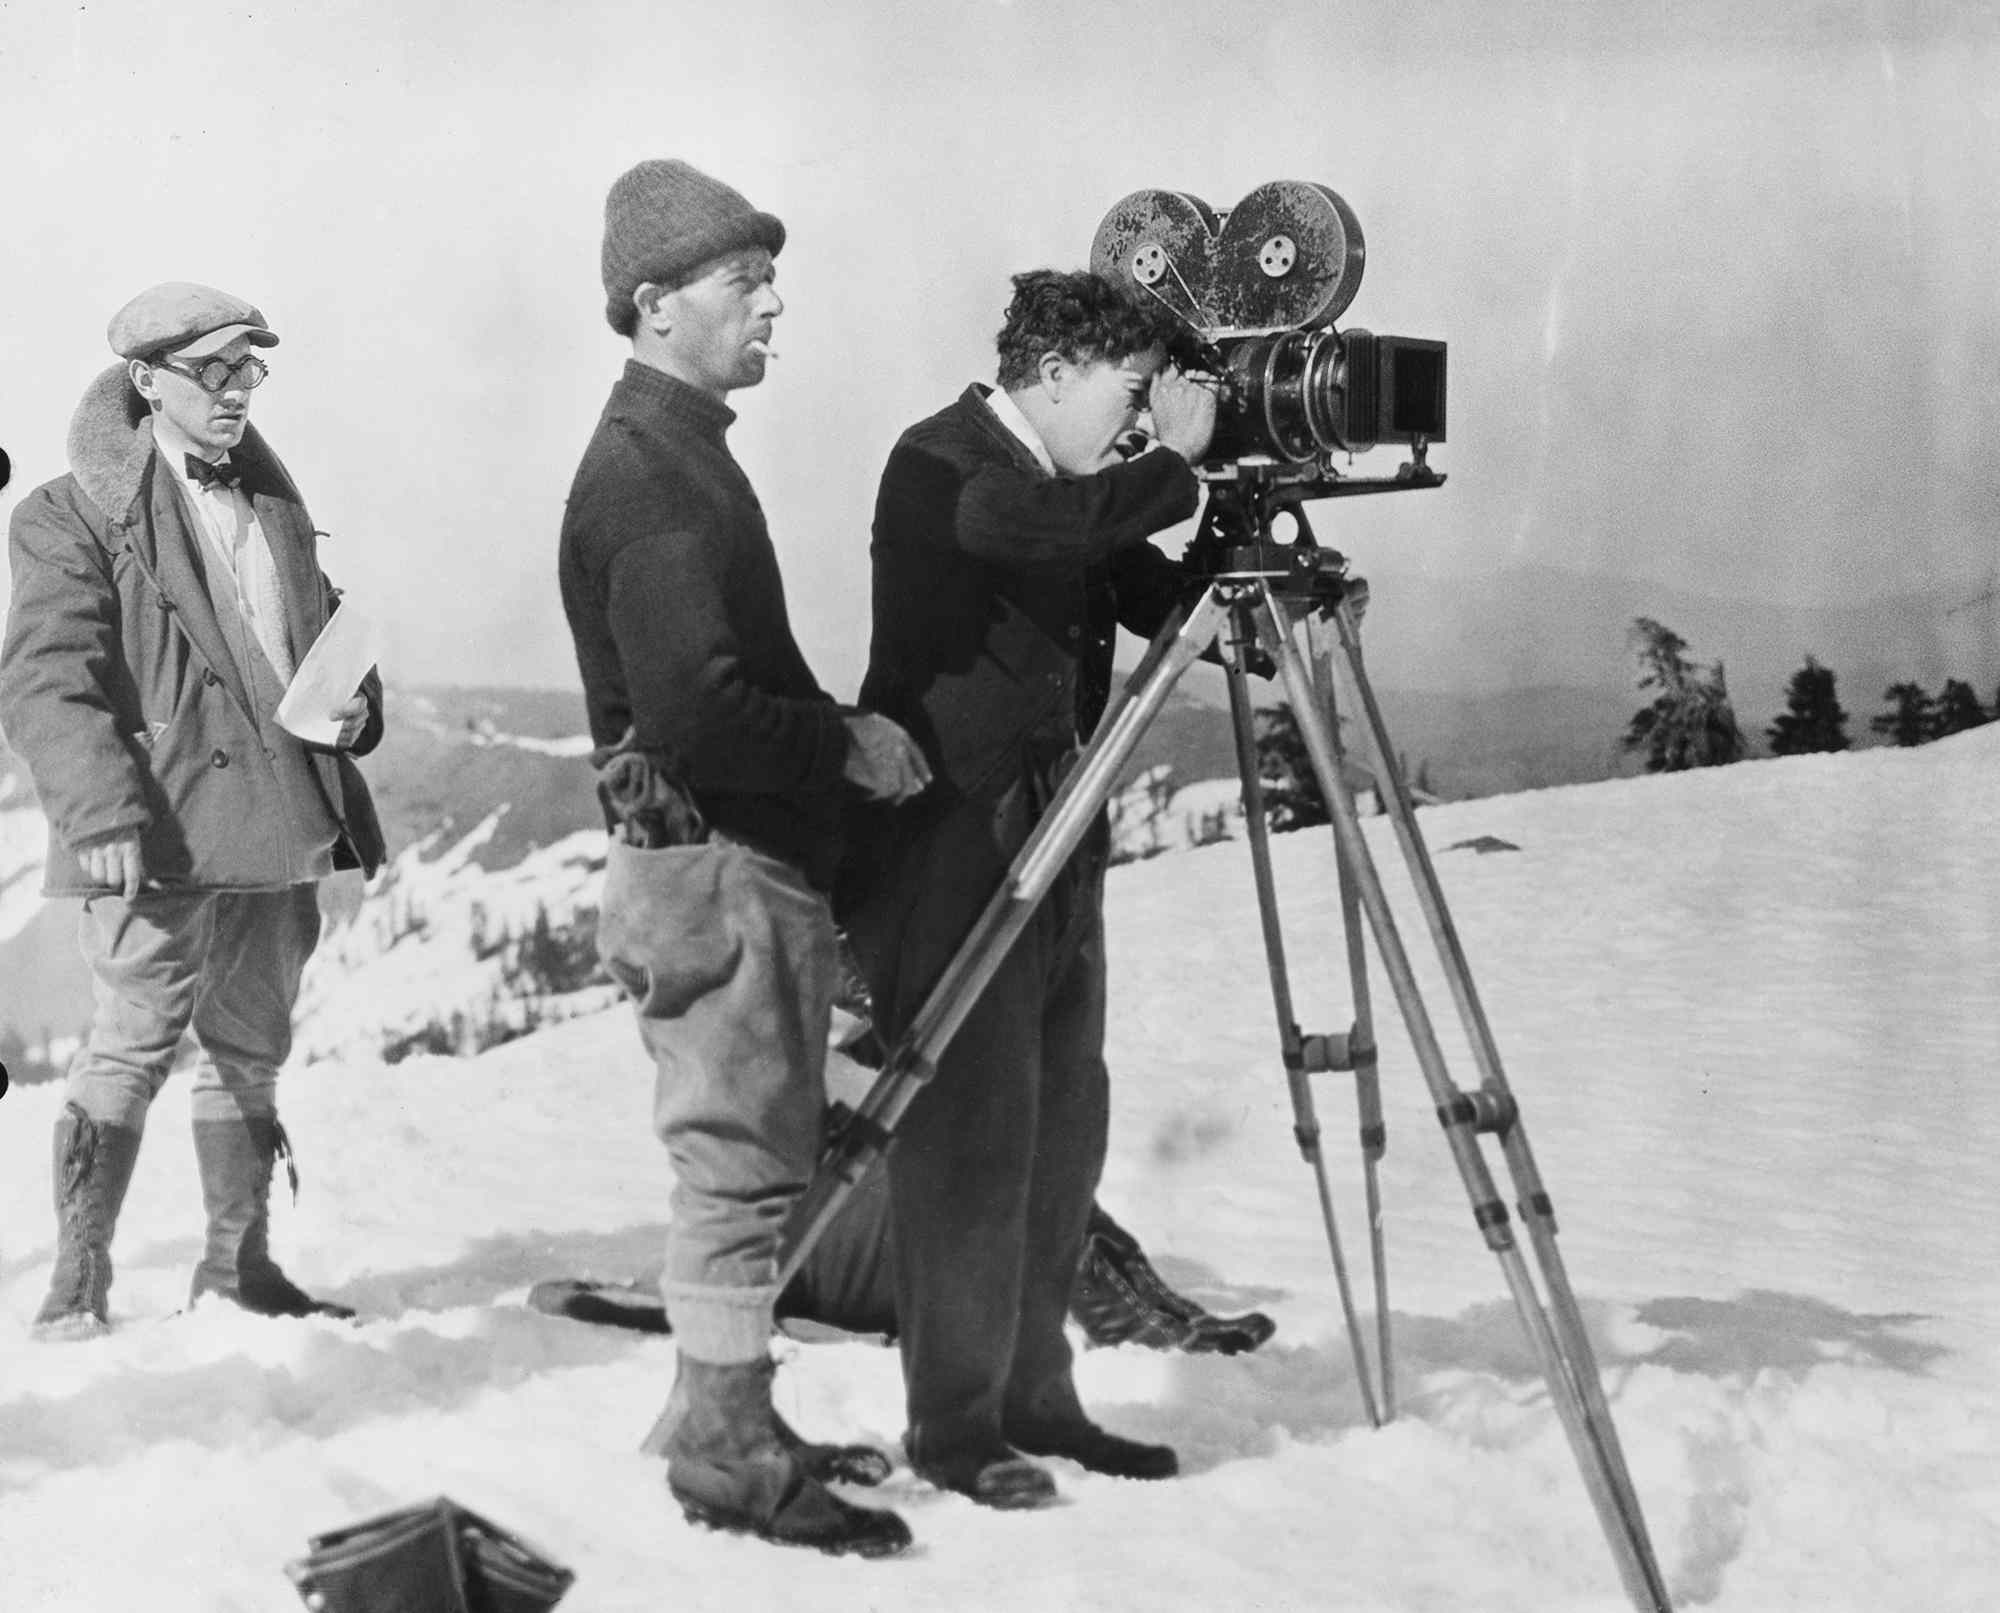 Charles Chaplin on the set of The Gold Rush